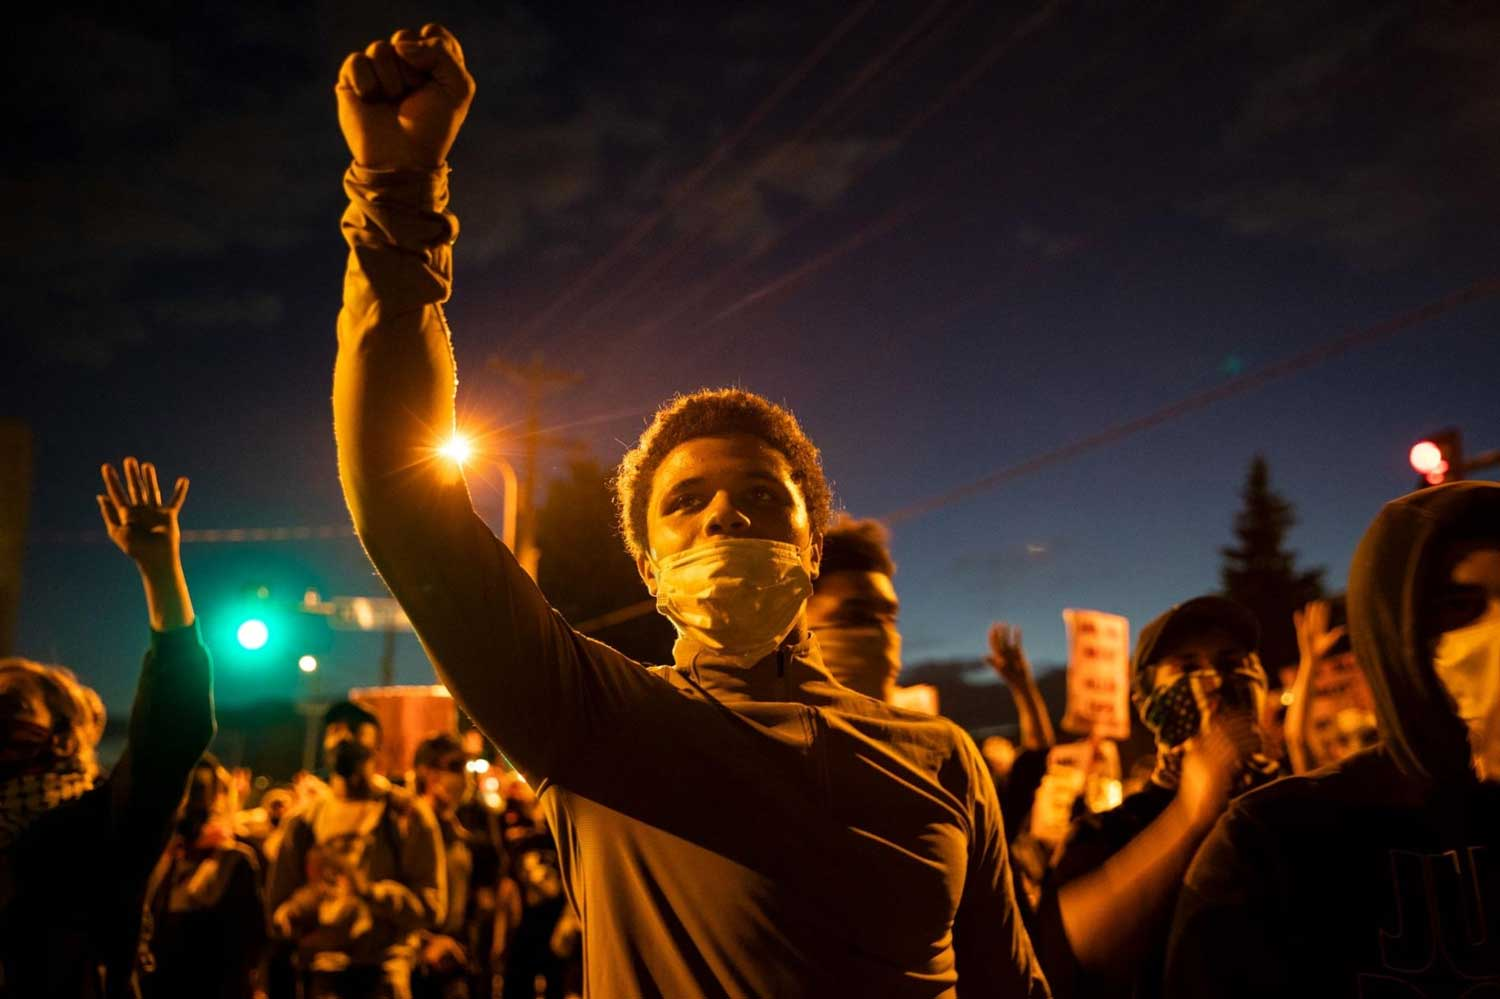 nationalgeographic.com: On Friday, May 29, protesters congregated outside a police station in Minneapolis to demand justice for George Floyd, an African-American man who died after a police officer knelt on his neck down during an arrest. (Source: nationalgeographic.com)